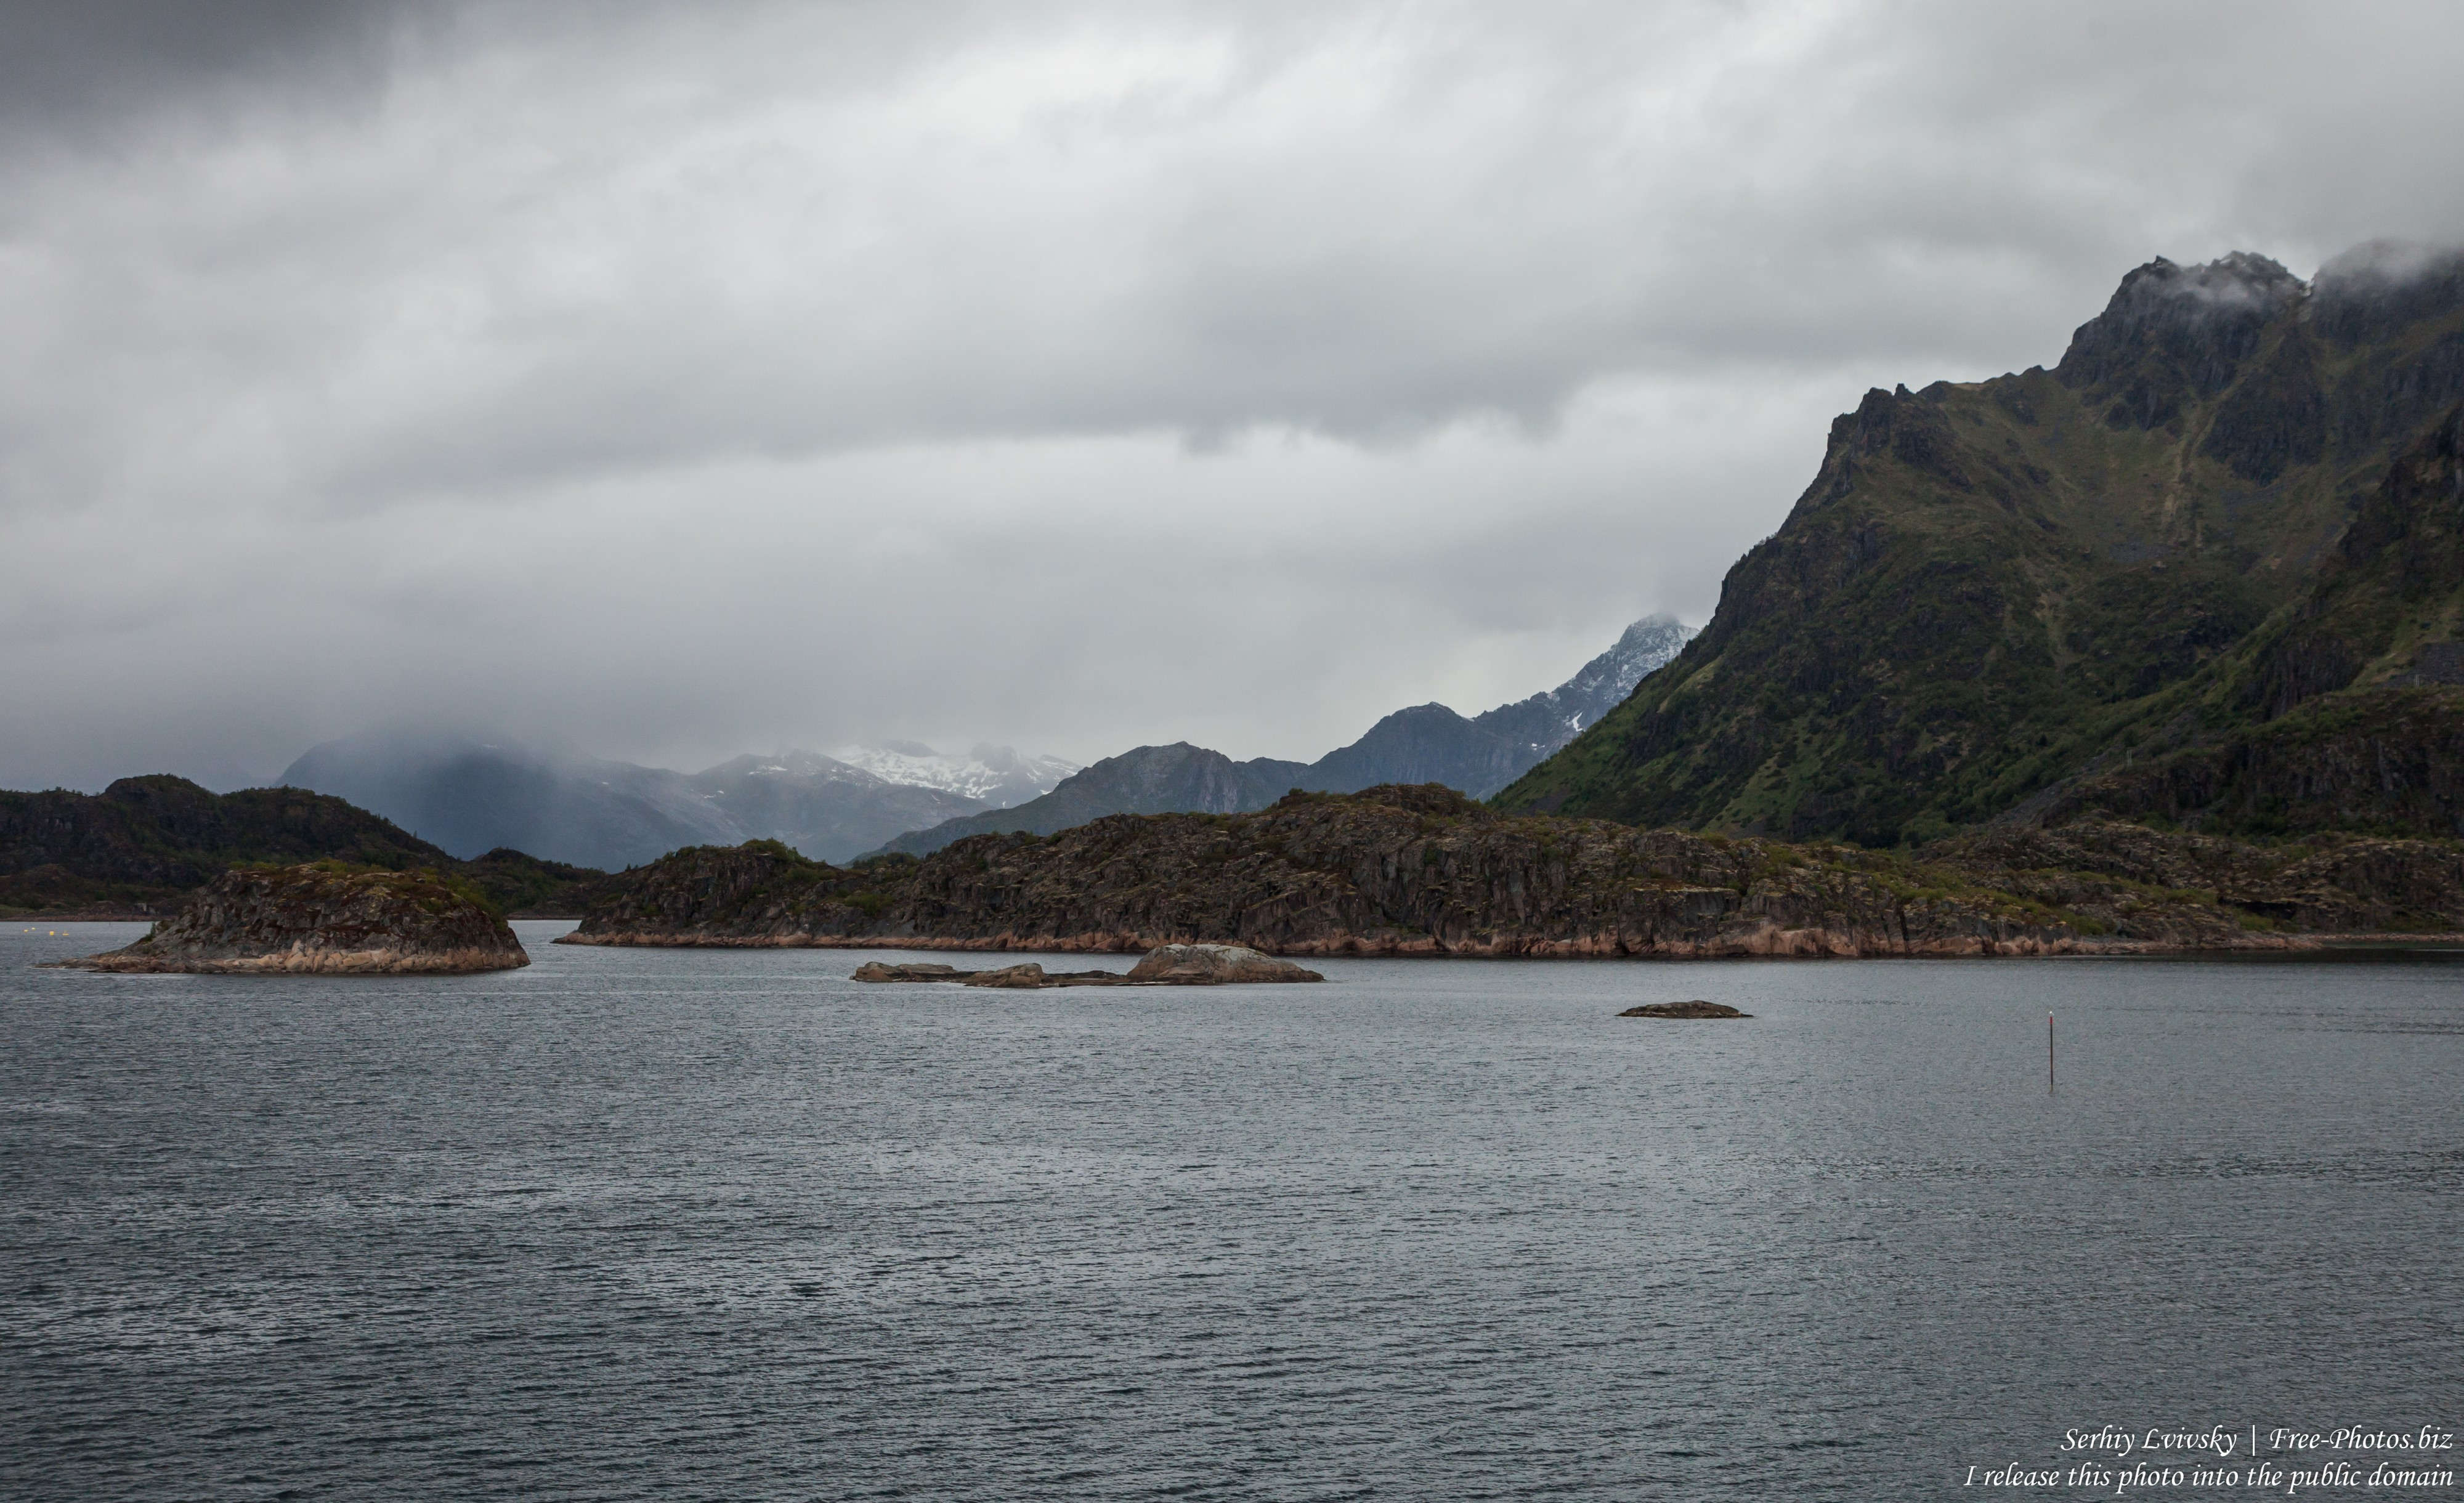 way from Trollfjord to Svolvaer, Norway, photographed in June 2018 by Serhiy Lvivsky, picture 11